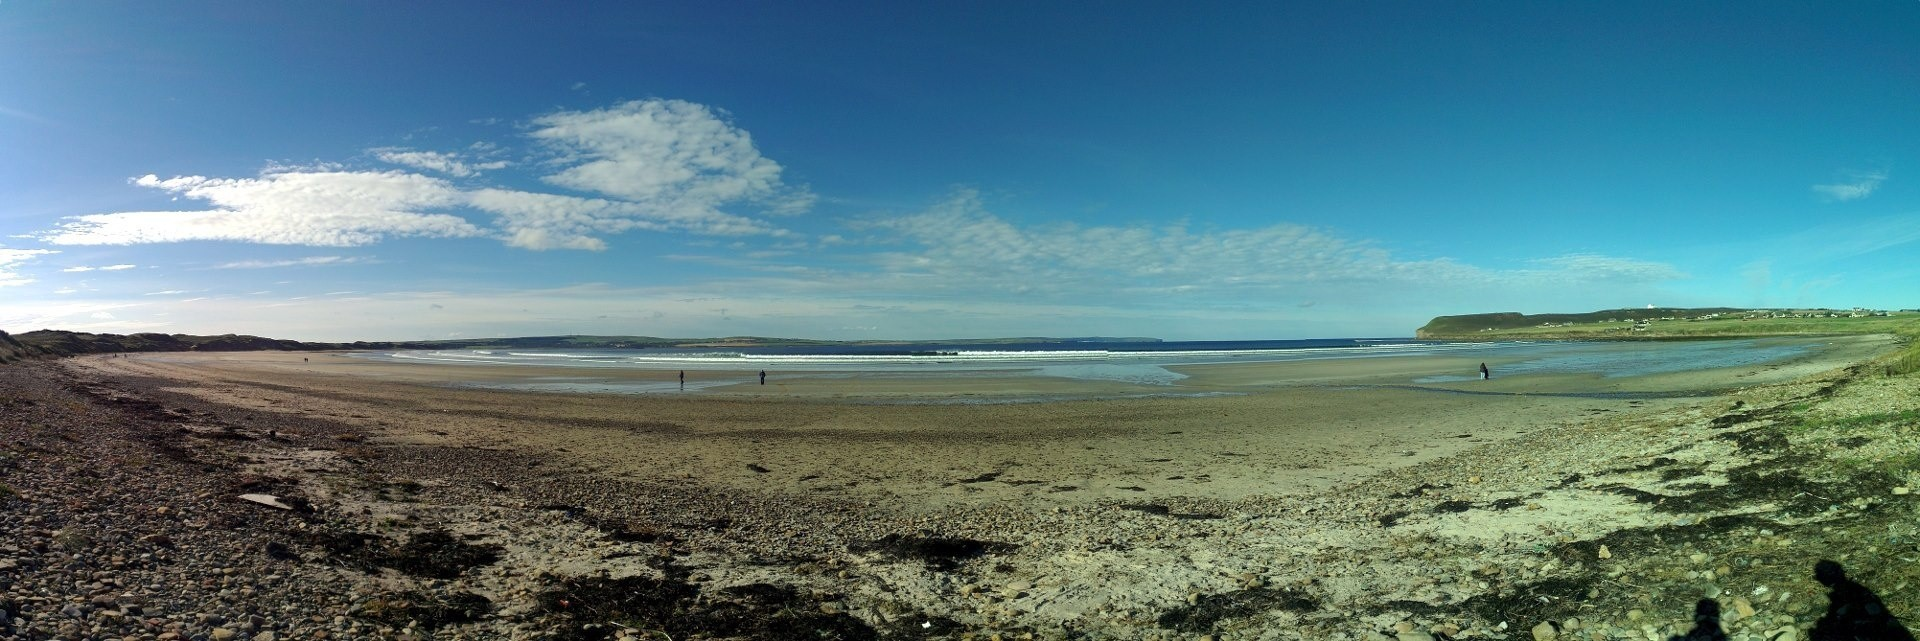 kieran's photo of Dunnet Bay